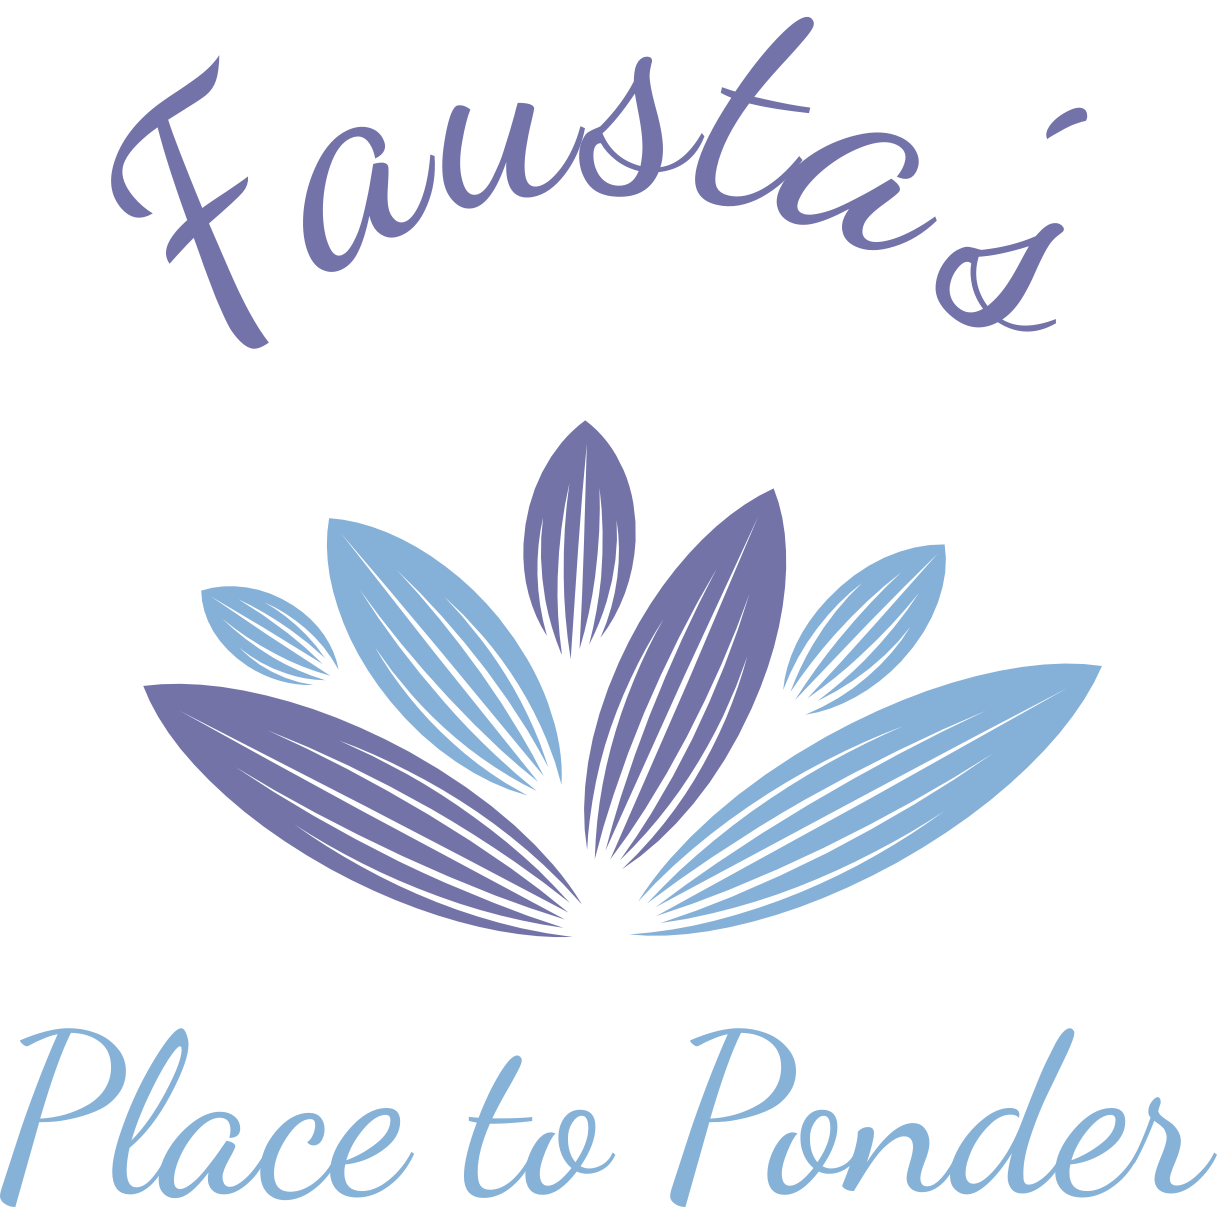 Fausta's Place to Ponder